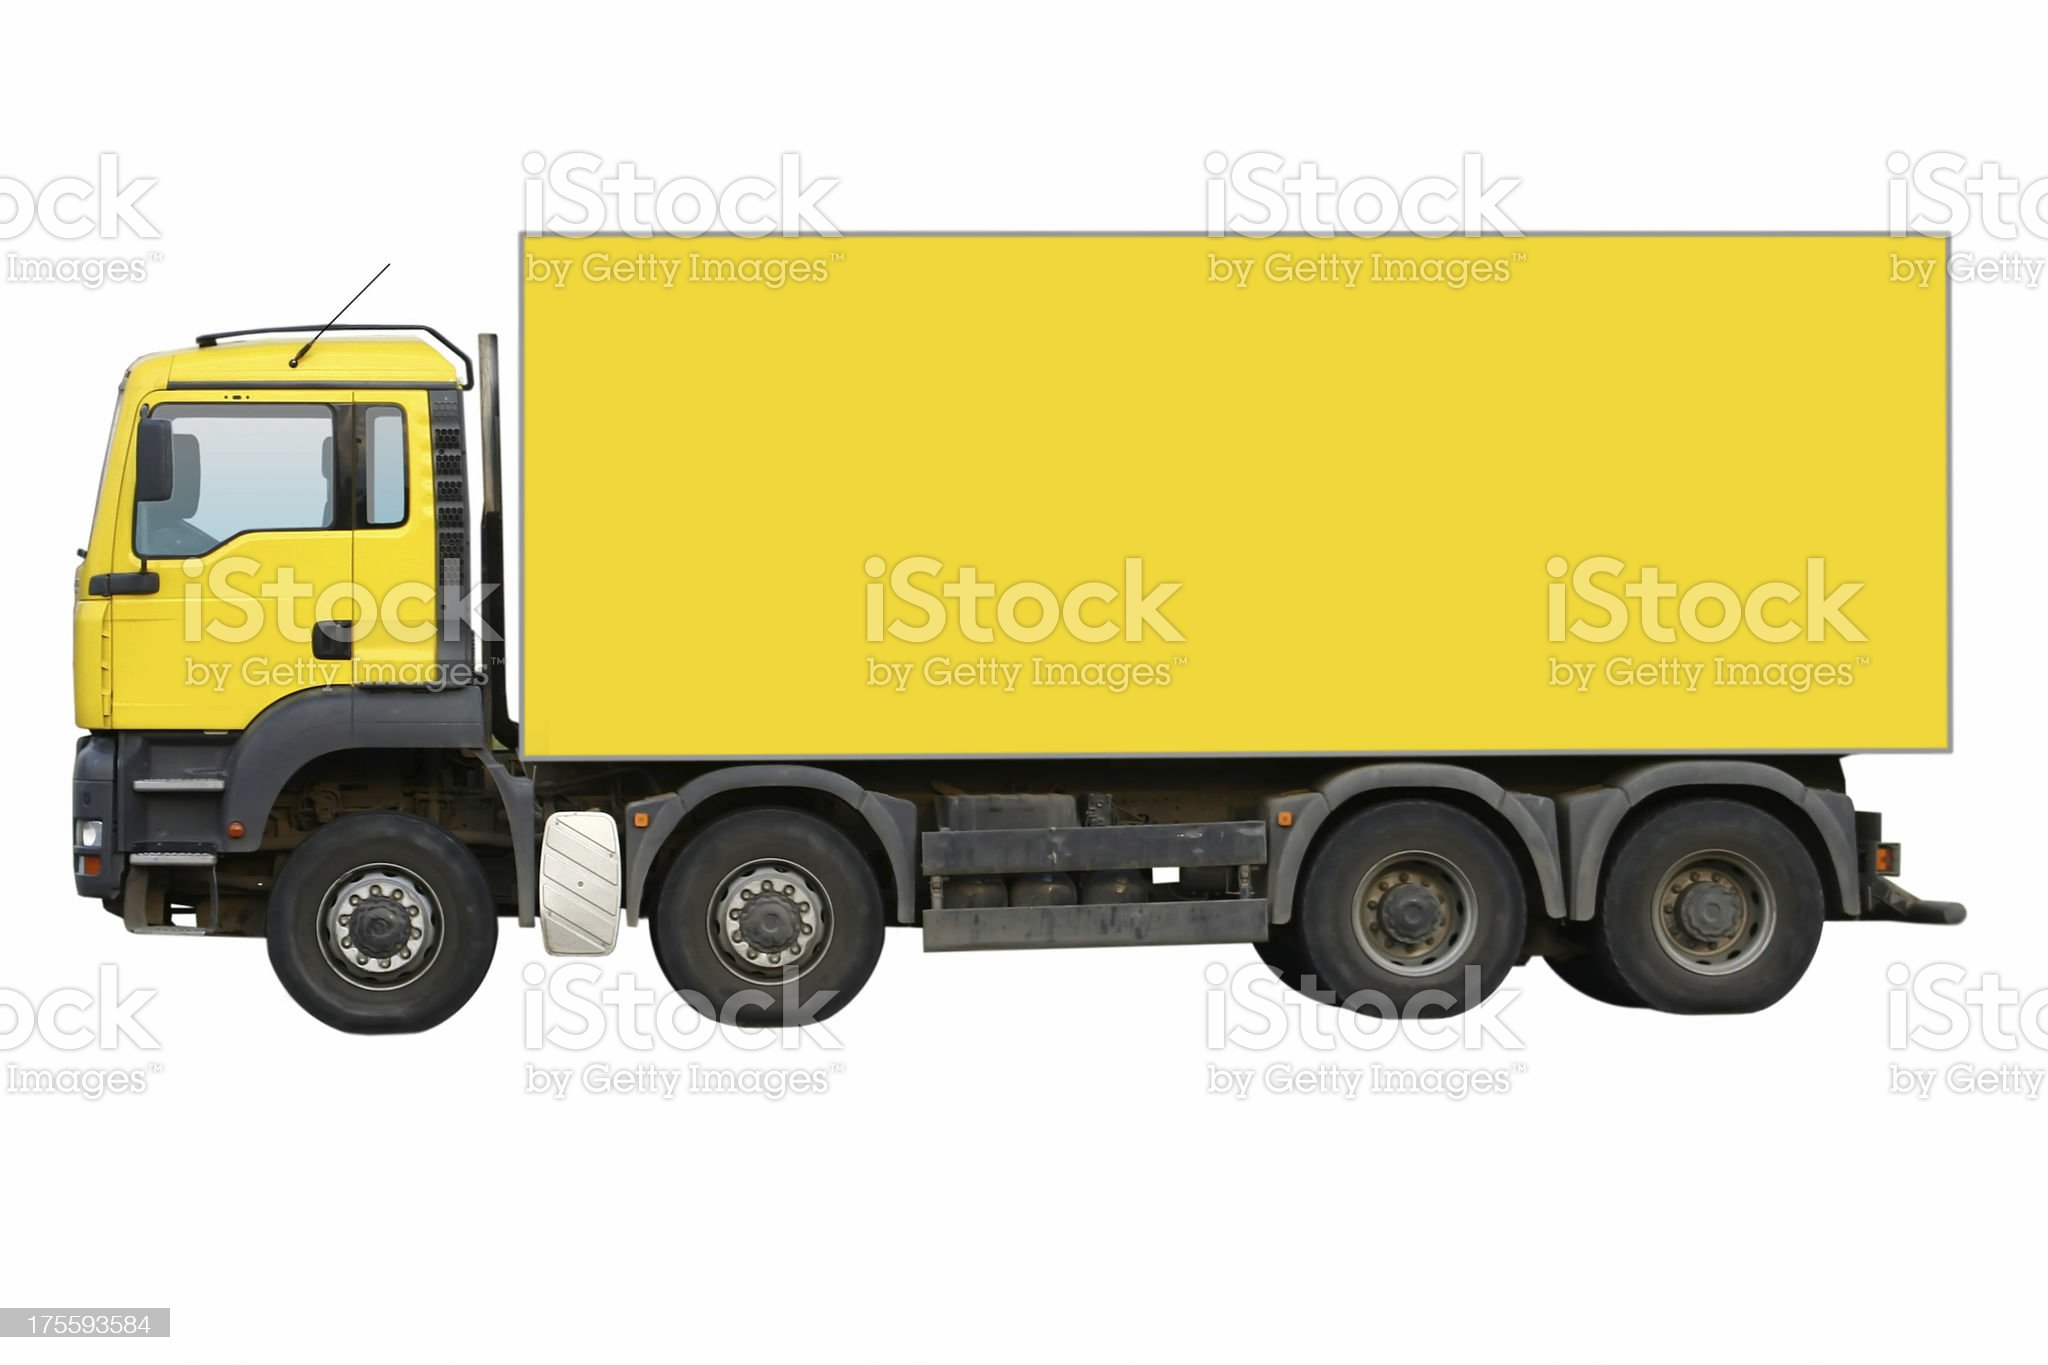 Truck Isolated royalty-free stock photo